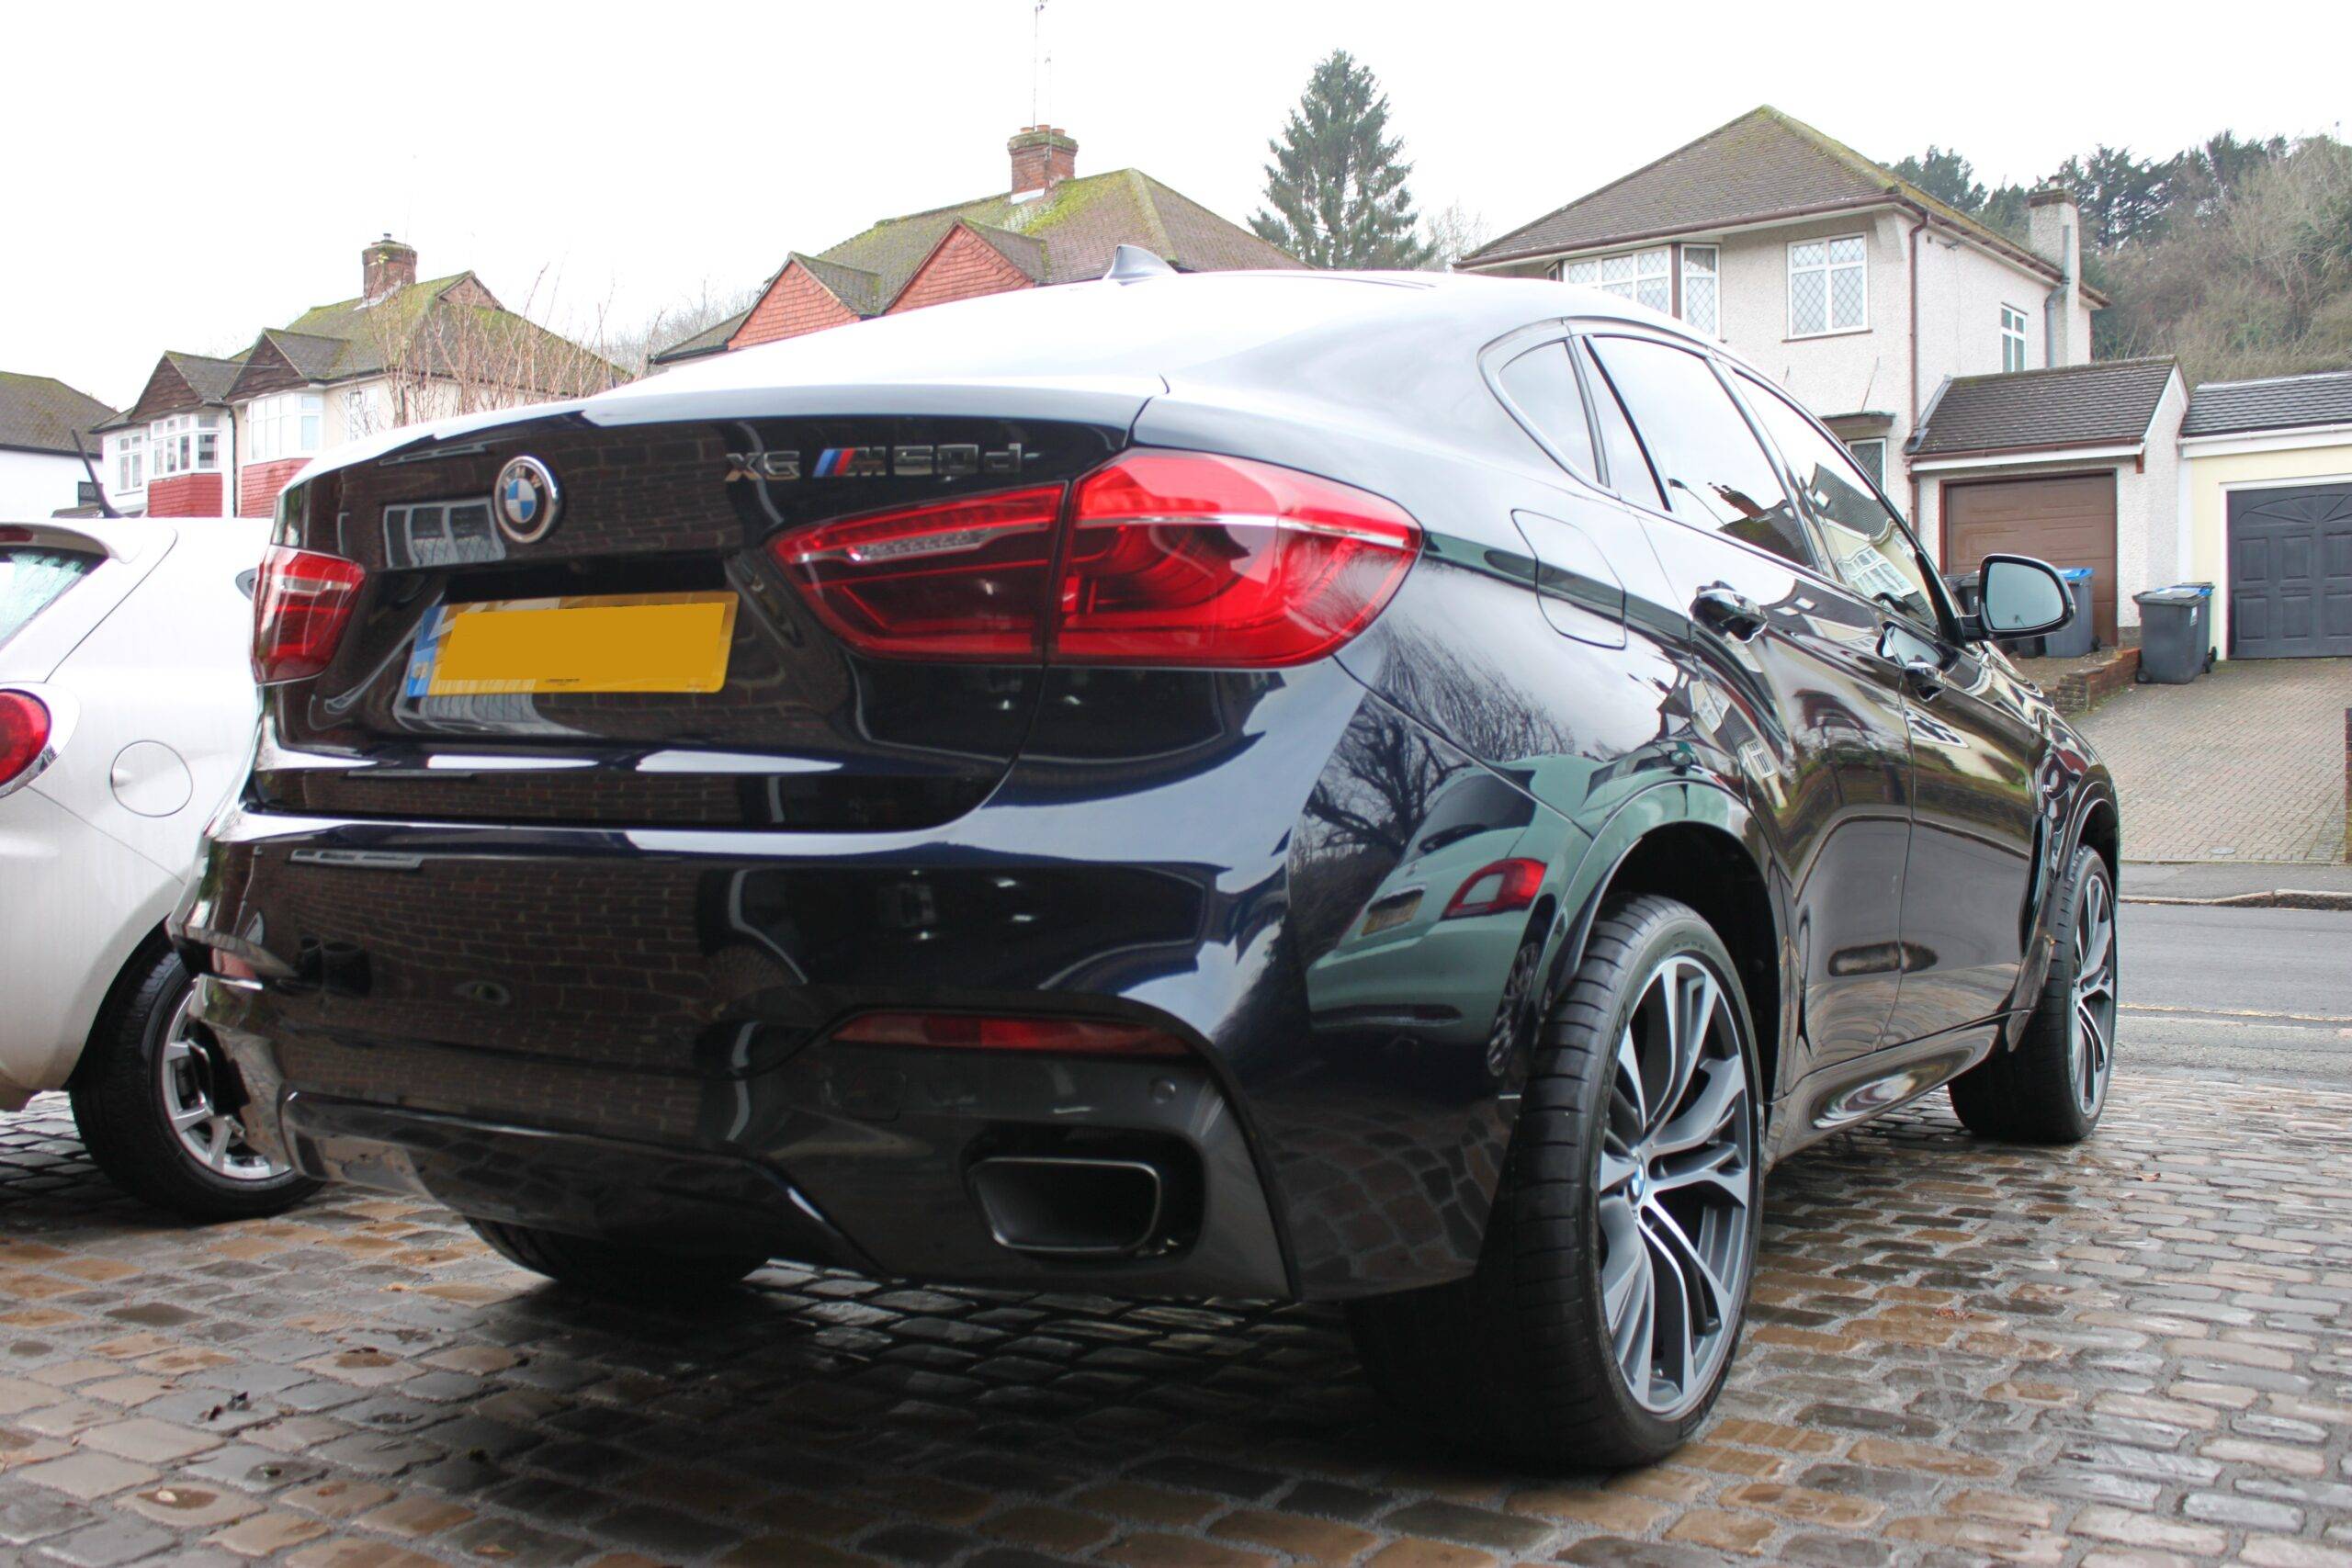 BMW X6 New car detail